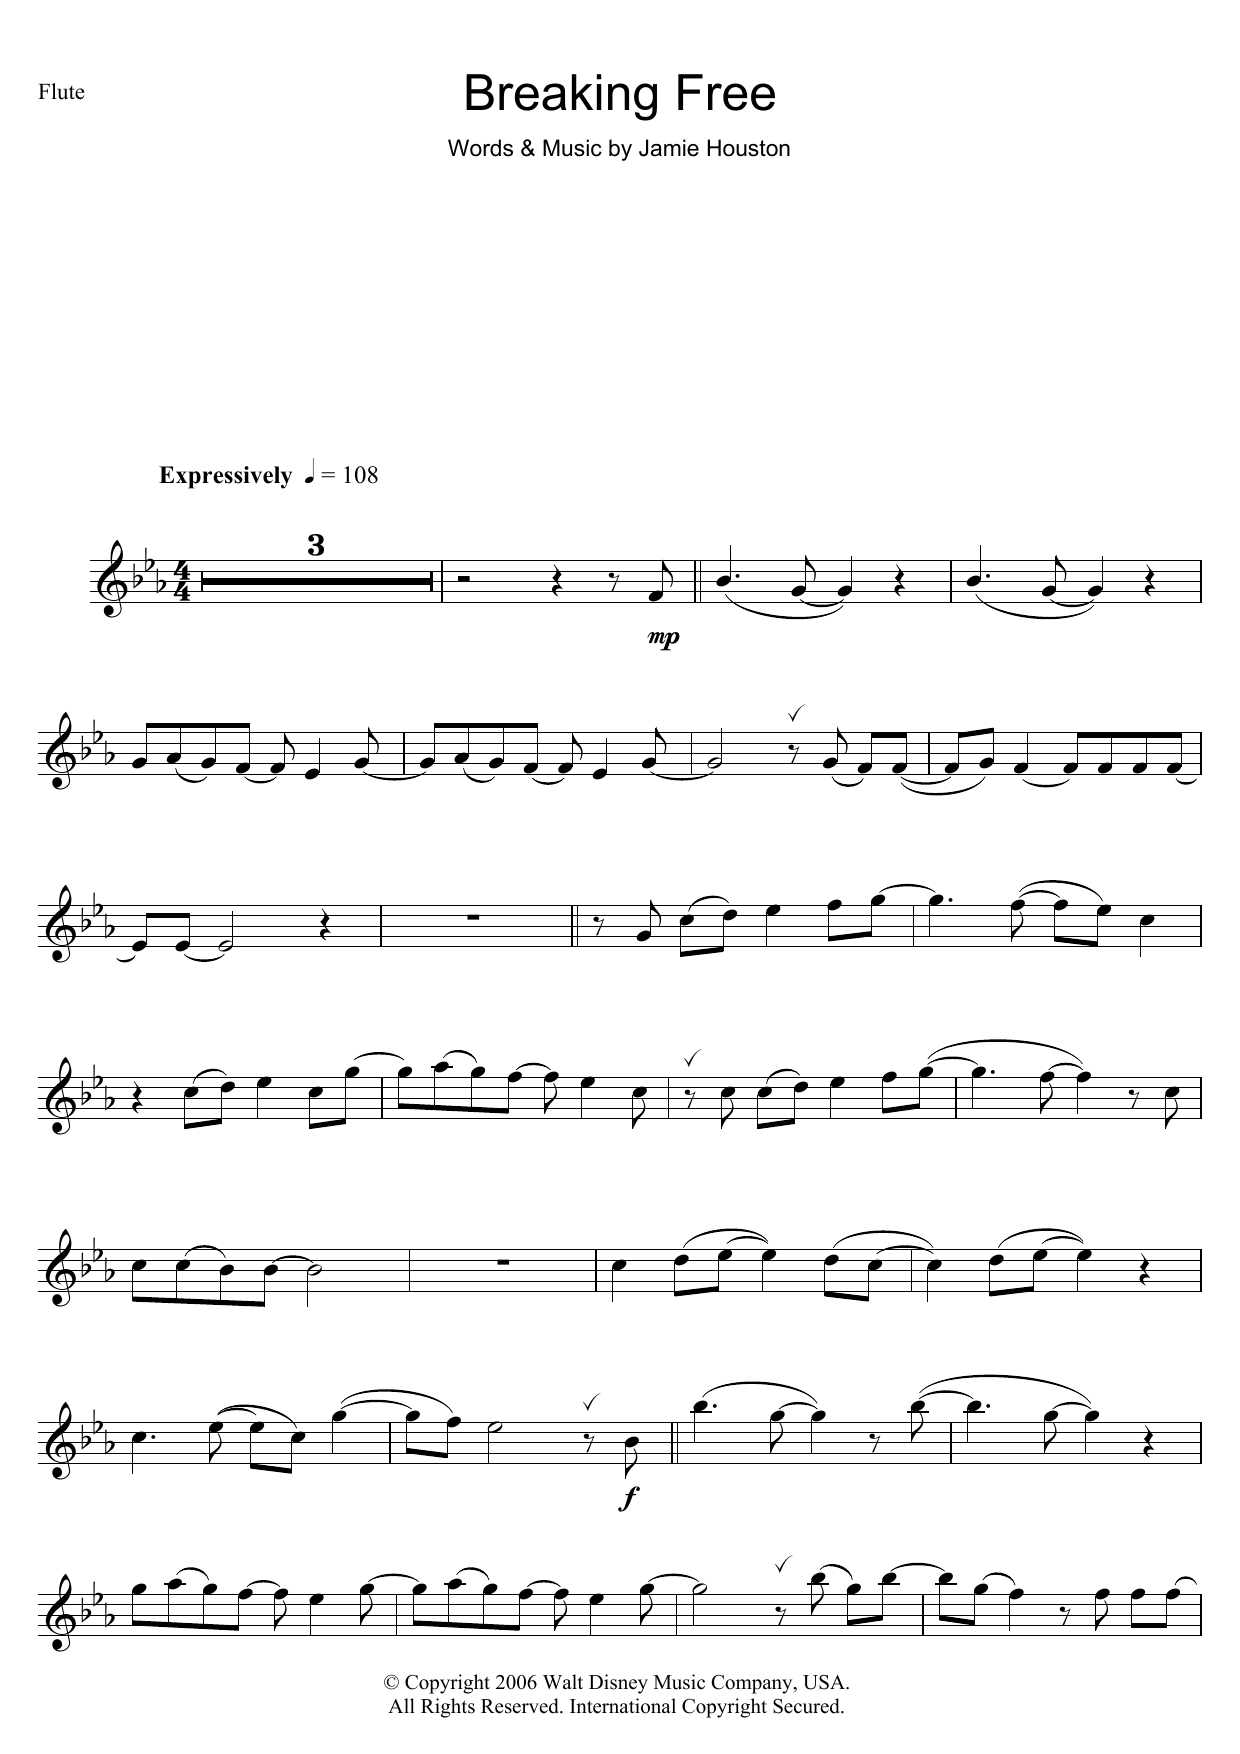 Vanessa Hudgens and Zac Efron Breaking Free (from High School Musical) sheet music notes and chords. Download Printable PDF.